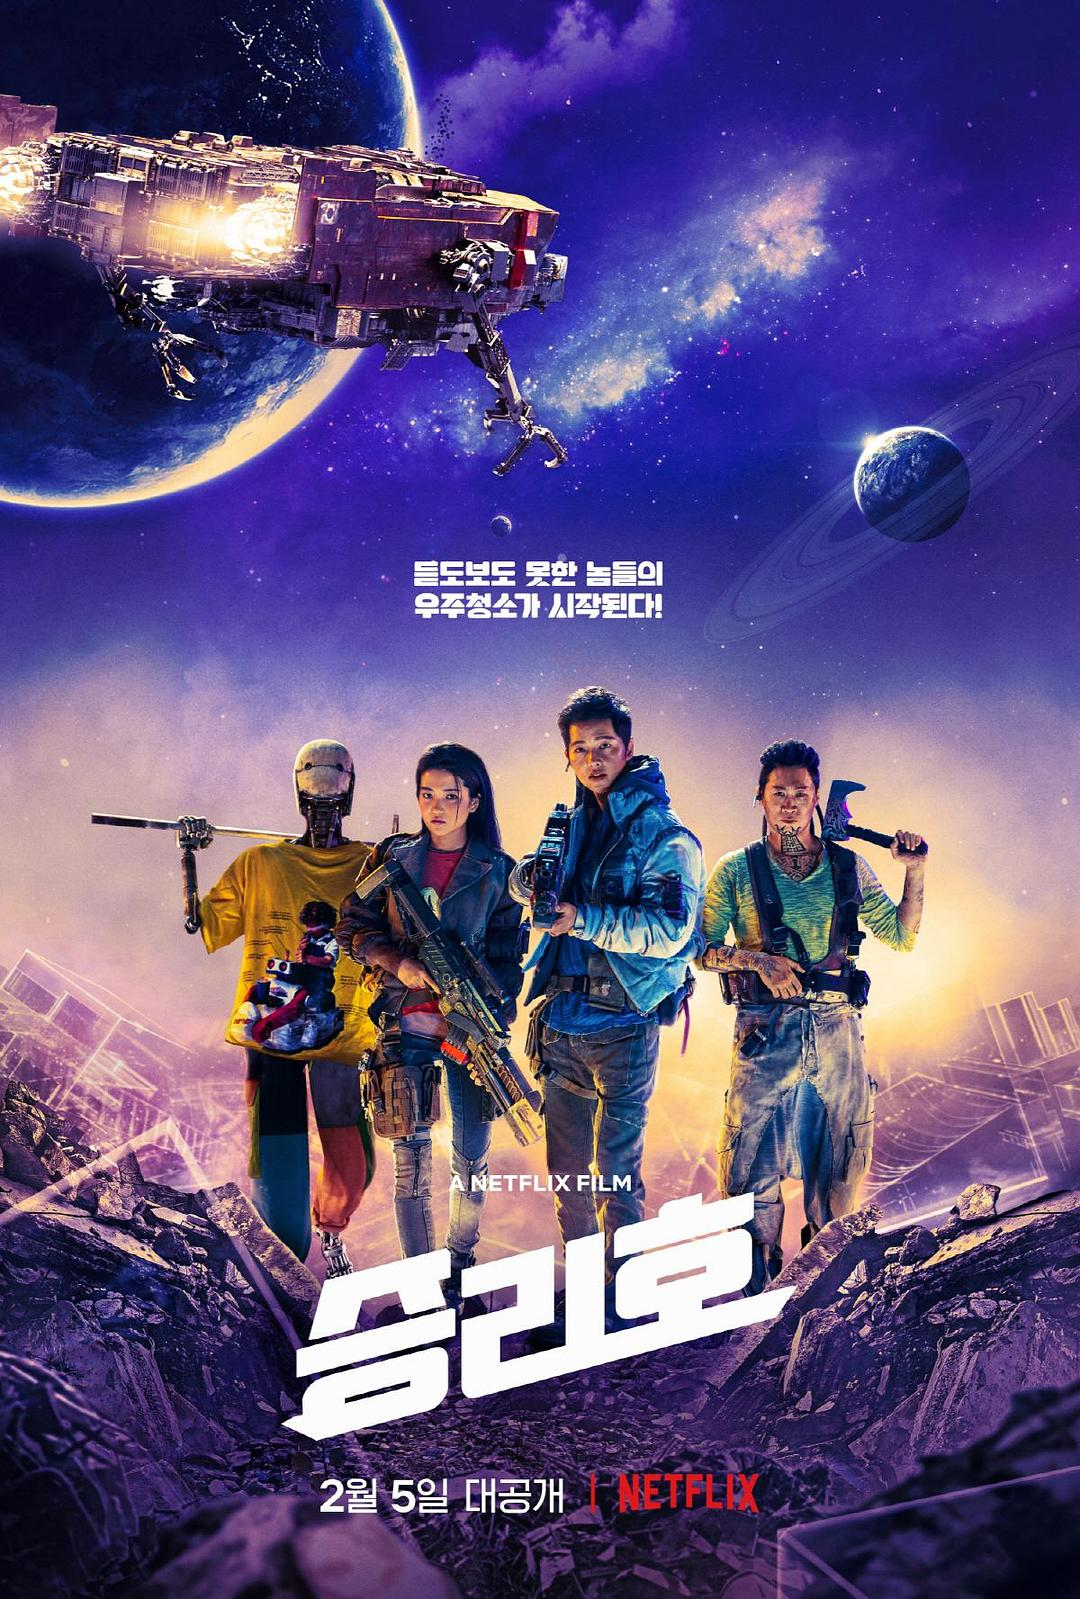 [Space Sweepers/승리호][2021][韩国][科幻][韩语]